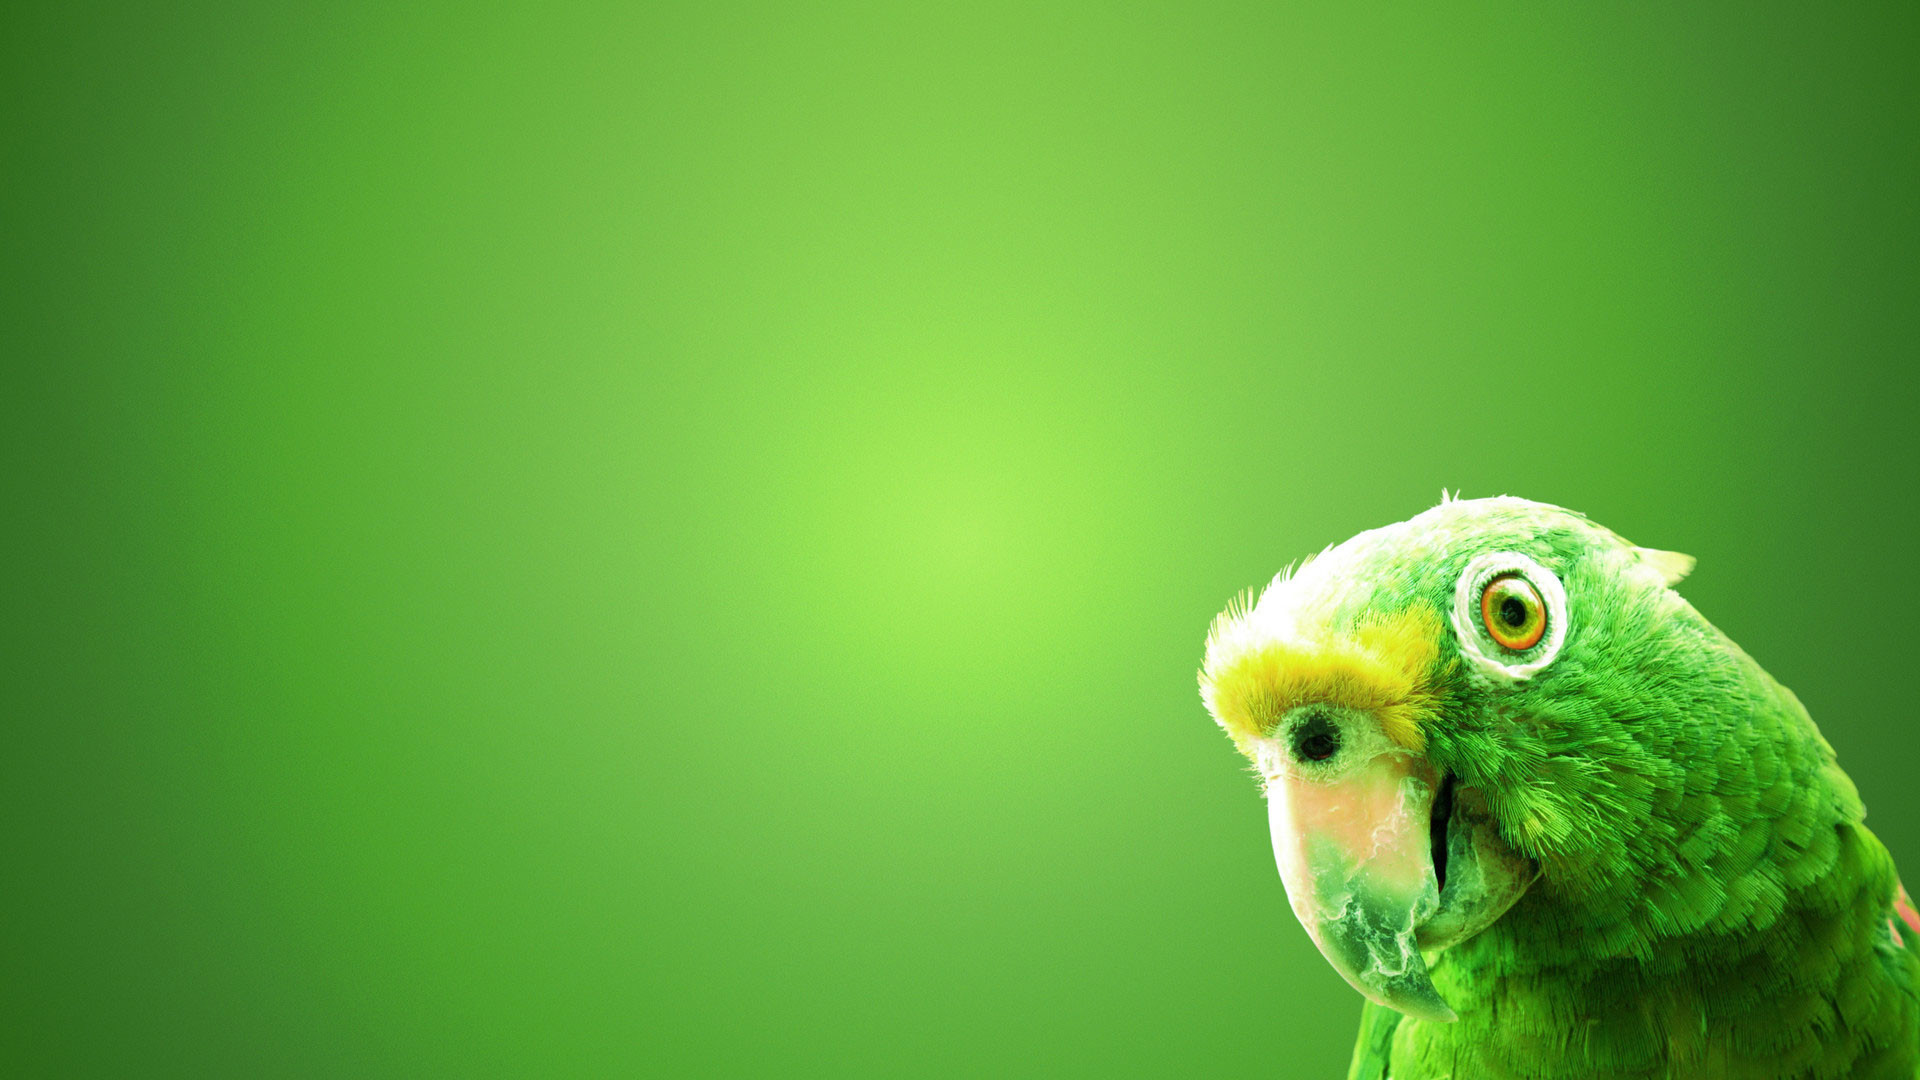 1920x1080 hd pics photos green background parrot cute desktop background wallpaper